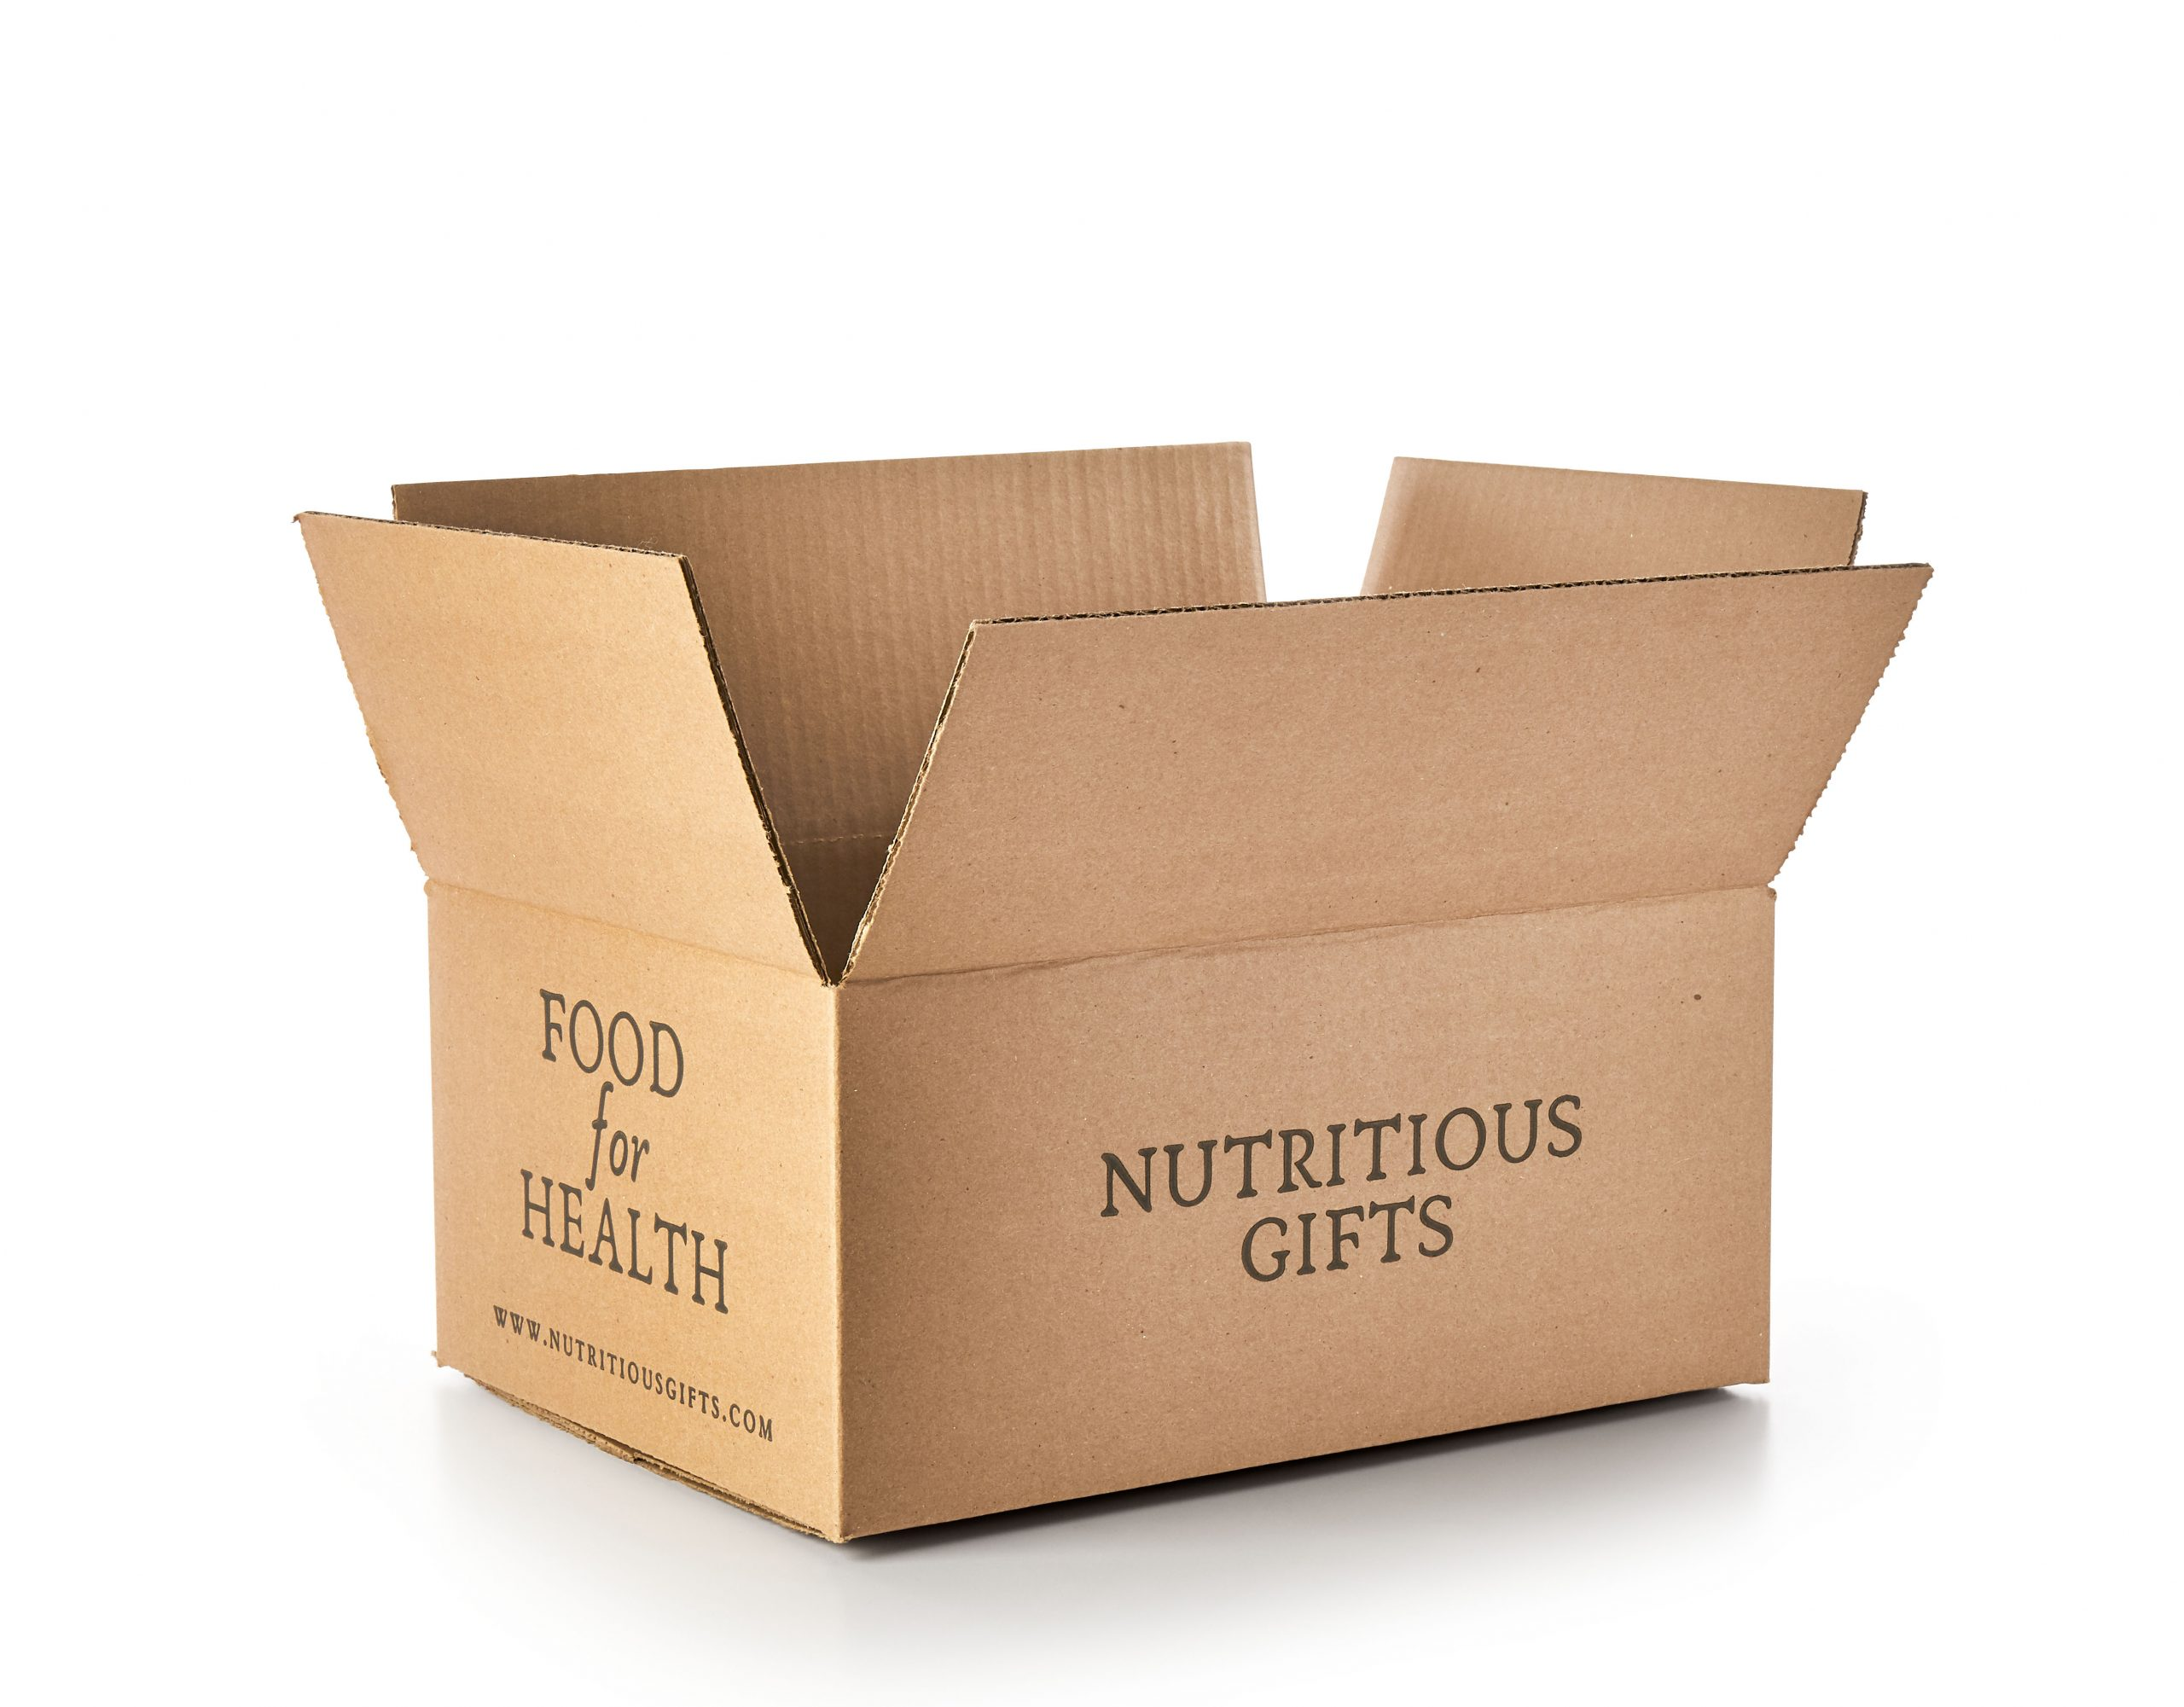 Nutritious Gifts Box Basket